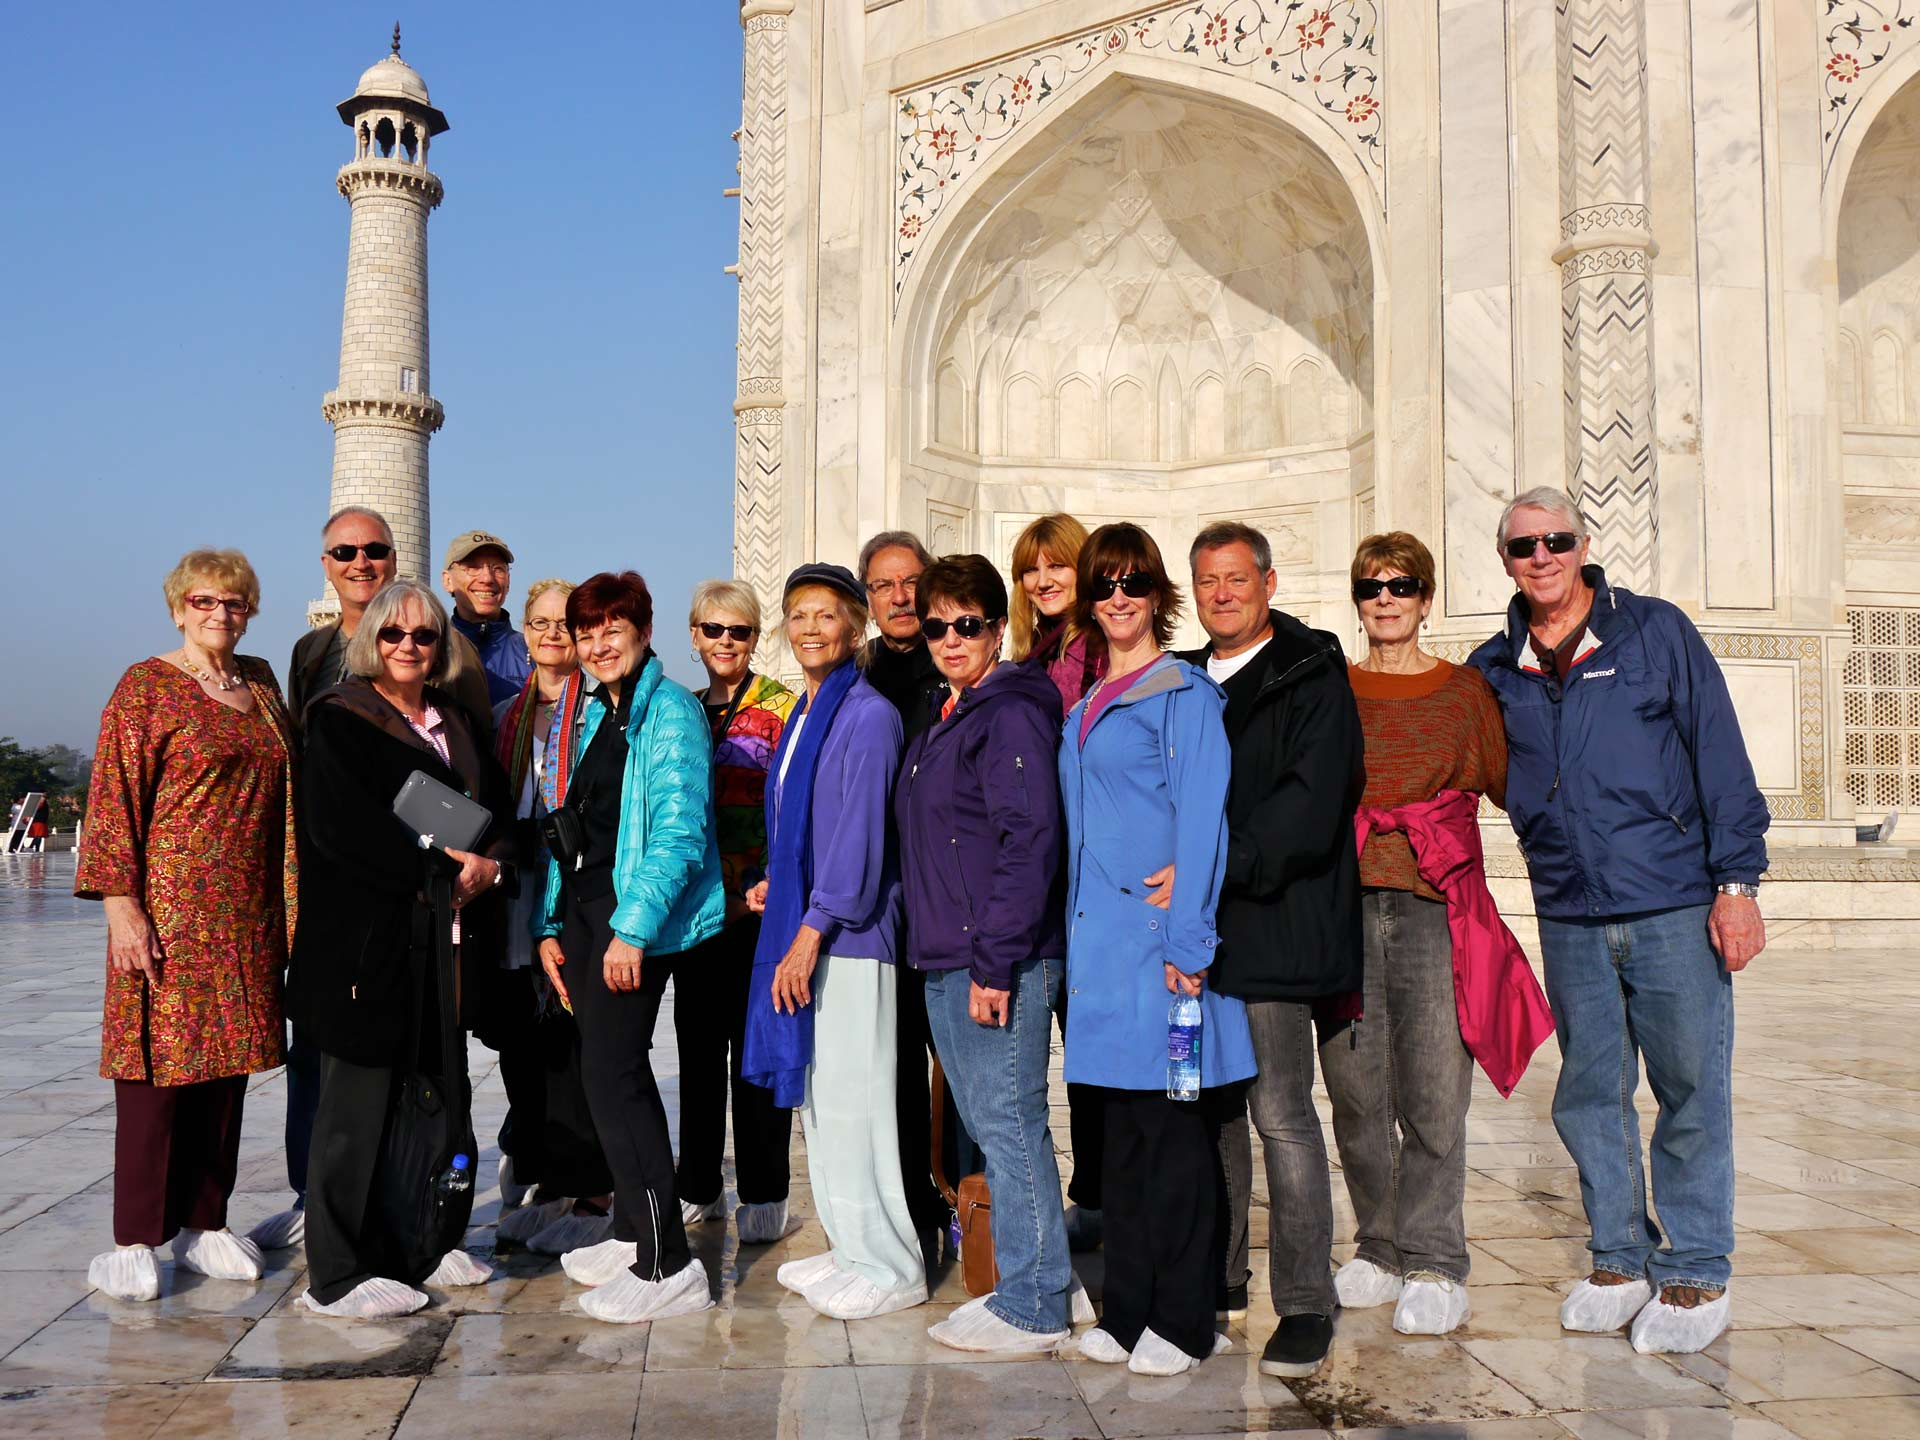 Tourist visit to famous historical monument Taj Mahal, UNESCO World Heritage Site.